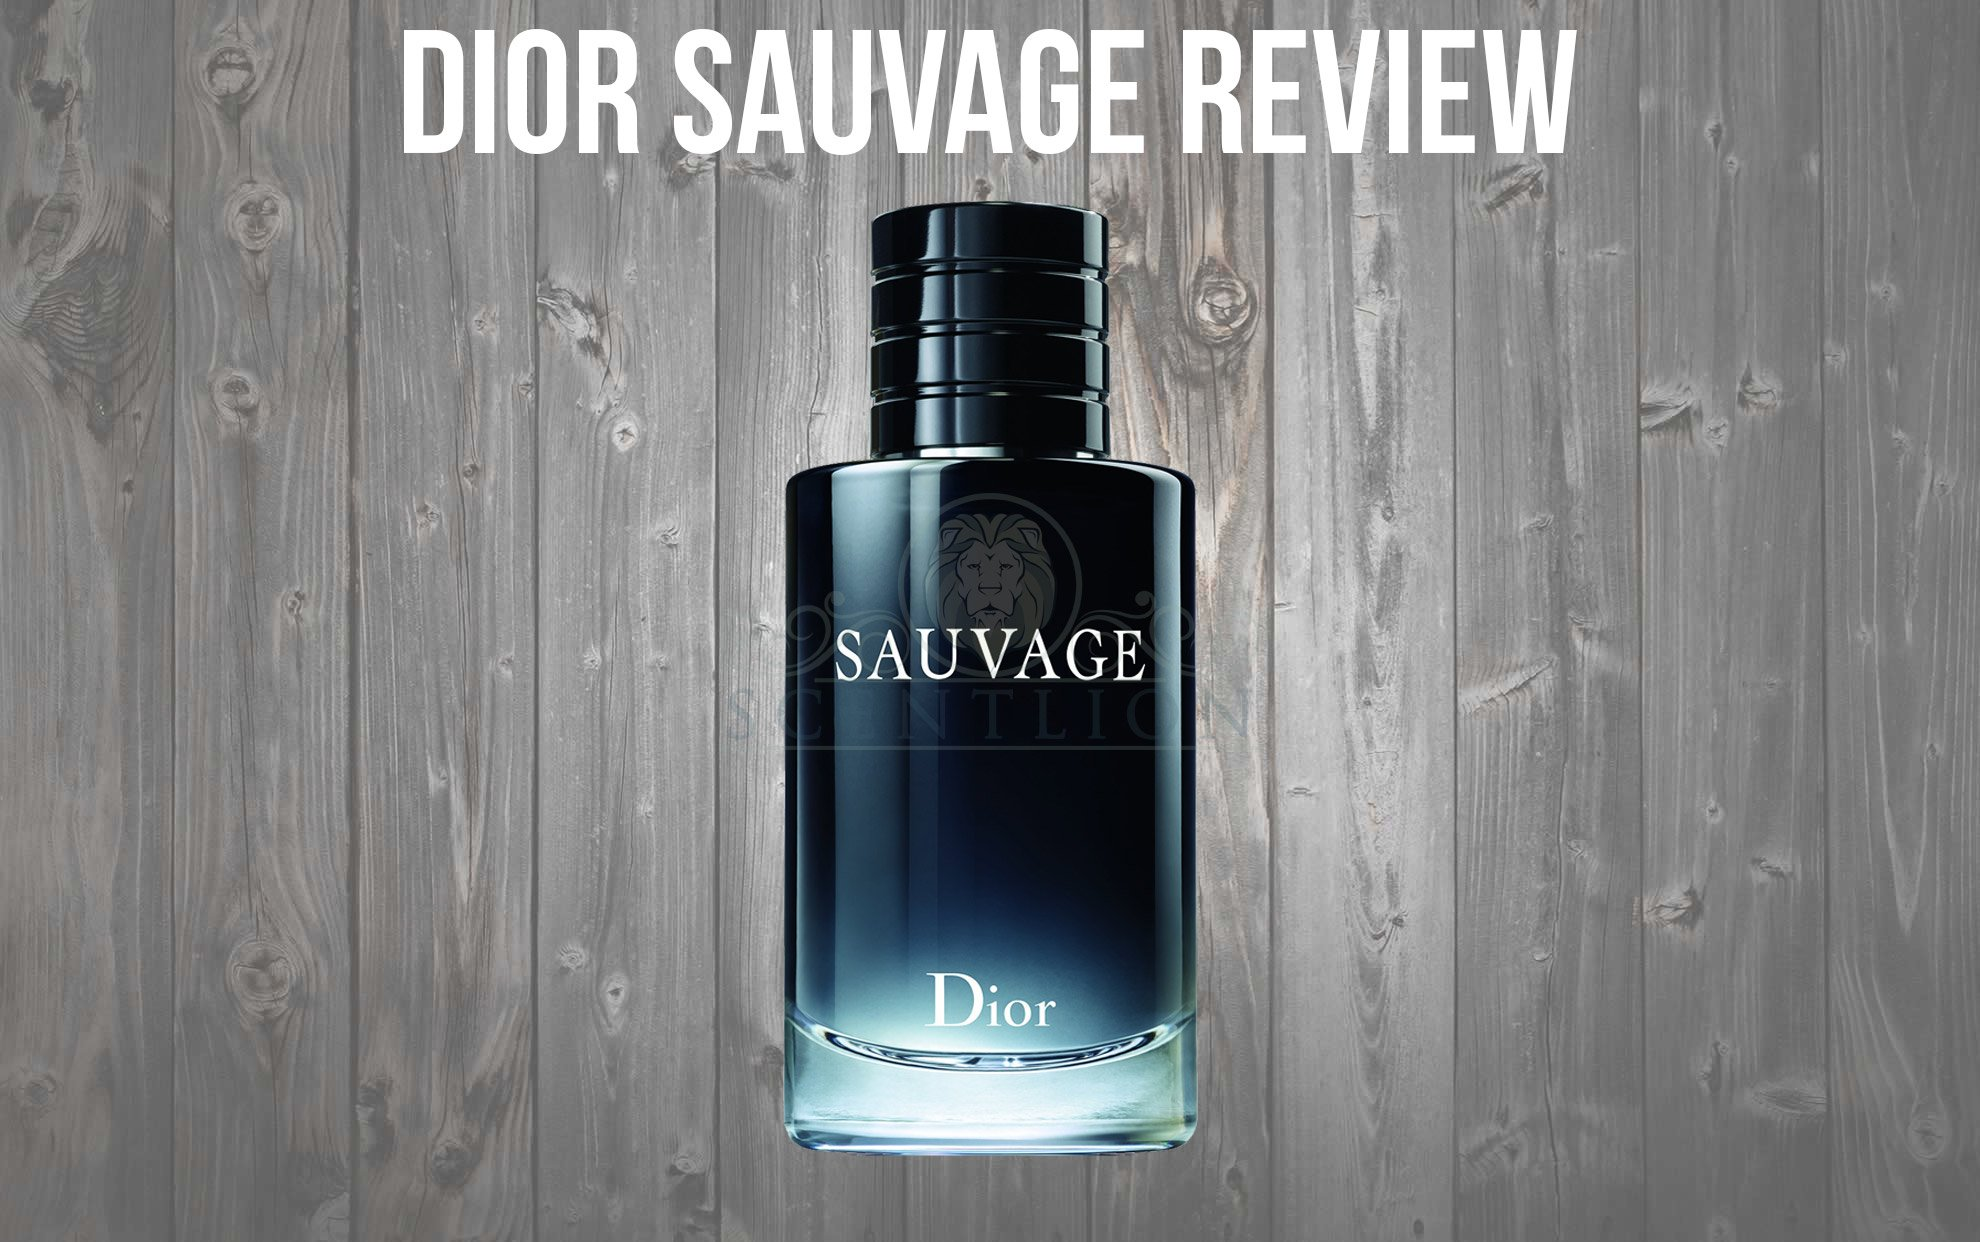 Dior Sauvage Review Scent Lion Cologne Review